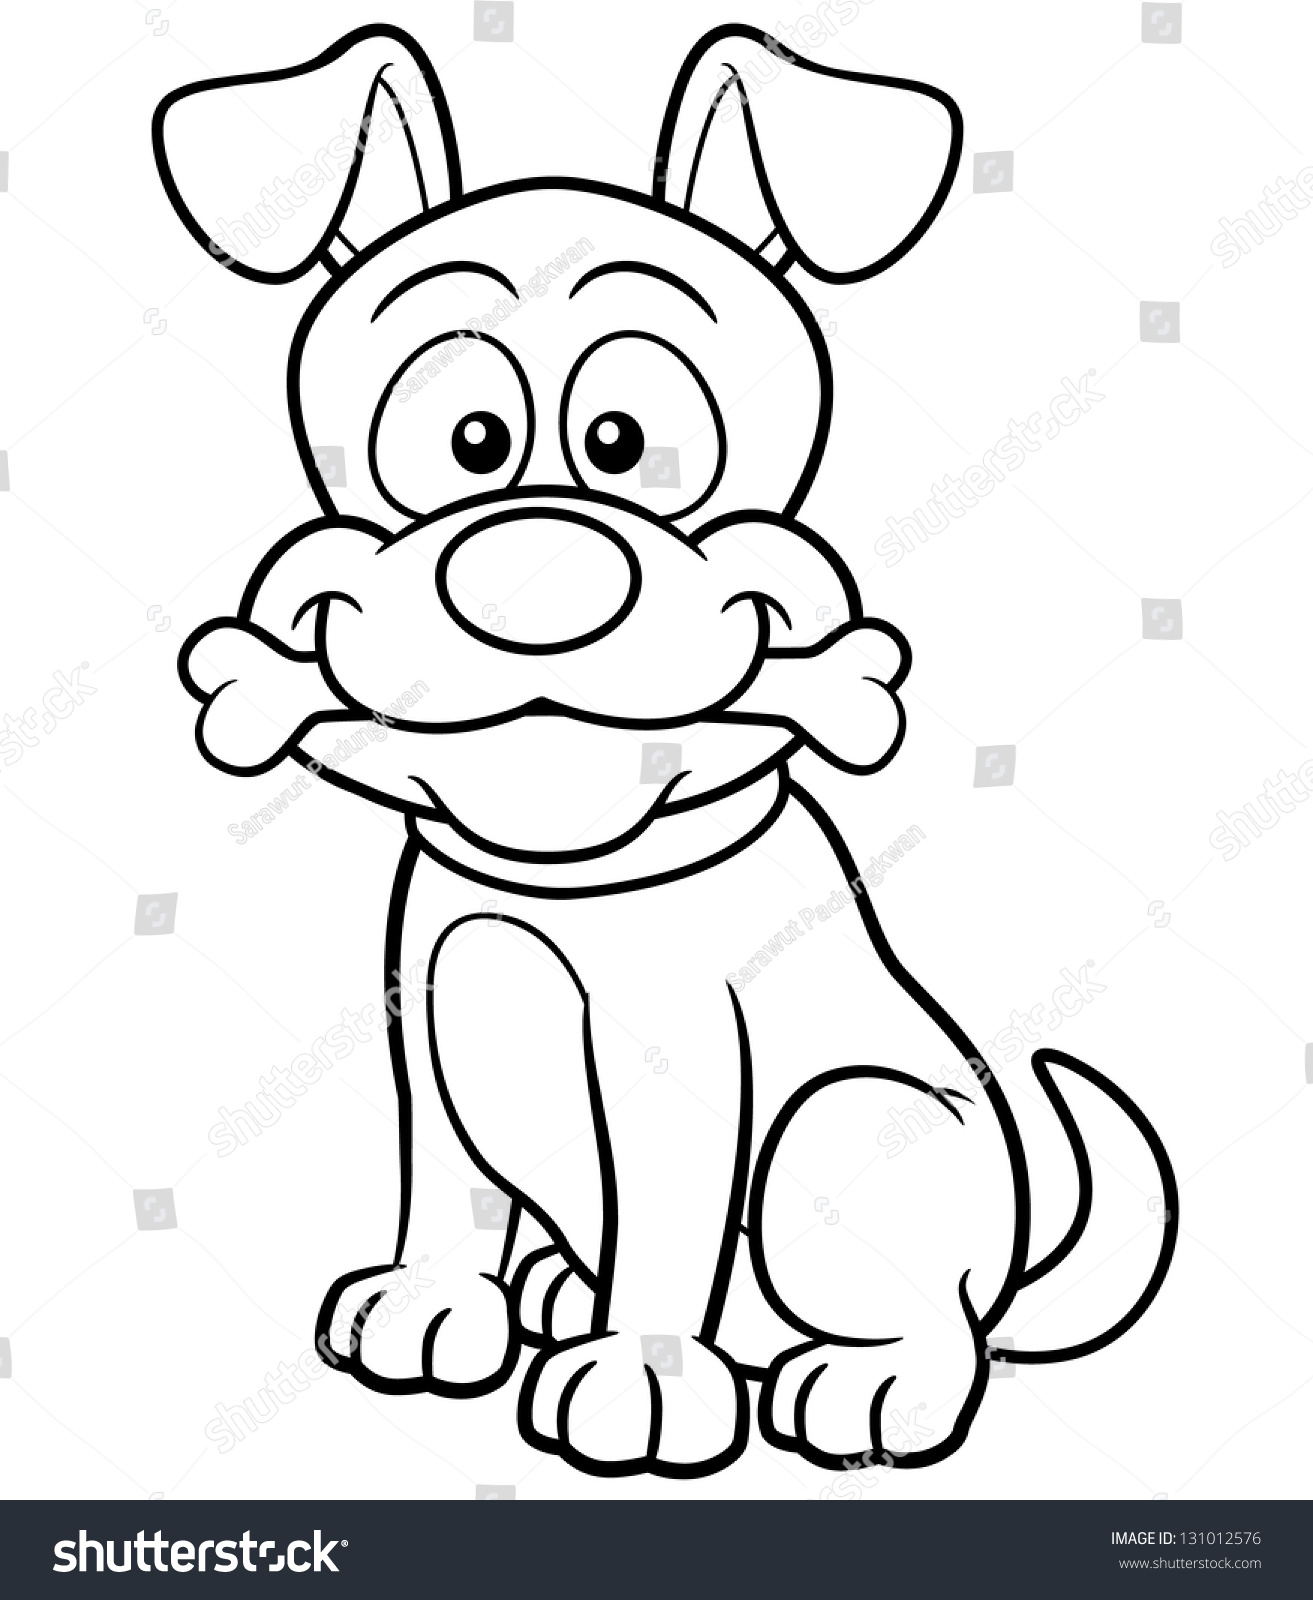 Vector Illustration Cartoon Dog Coloring Book Stock Vector